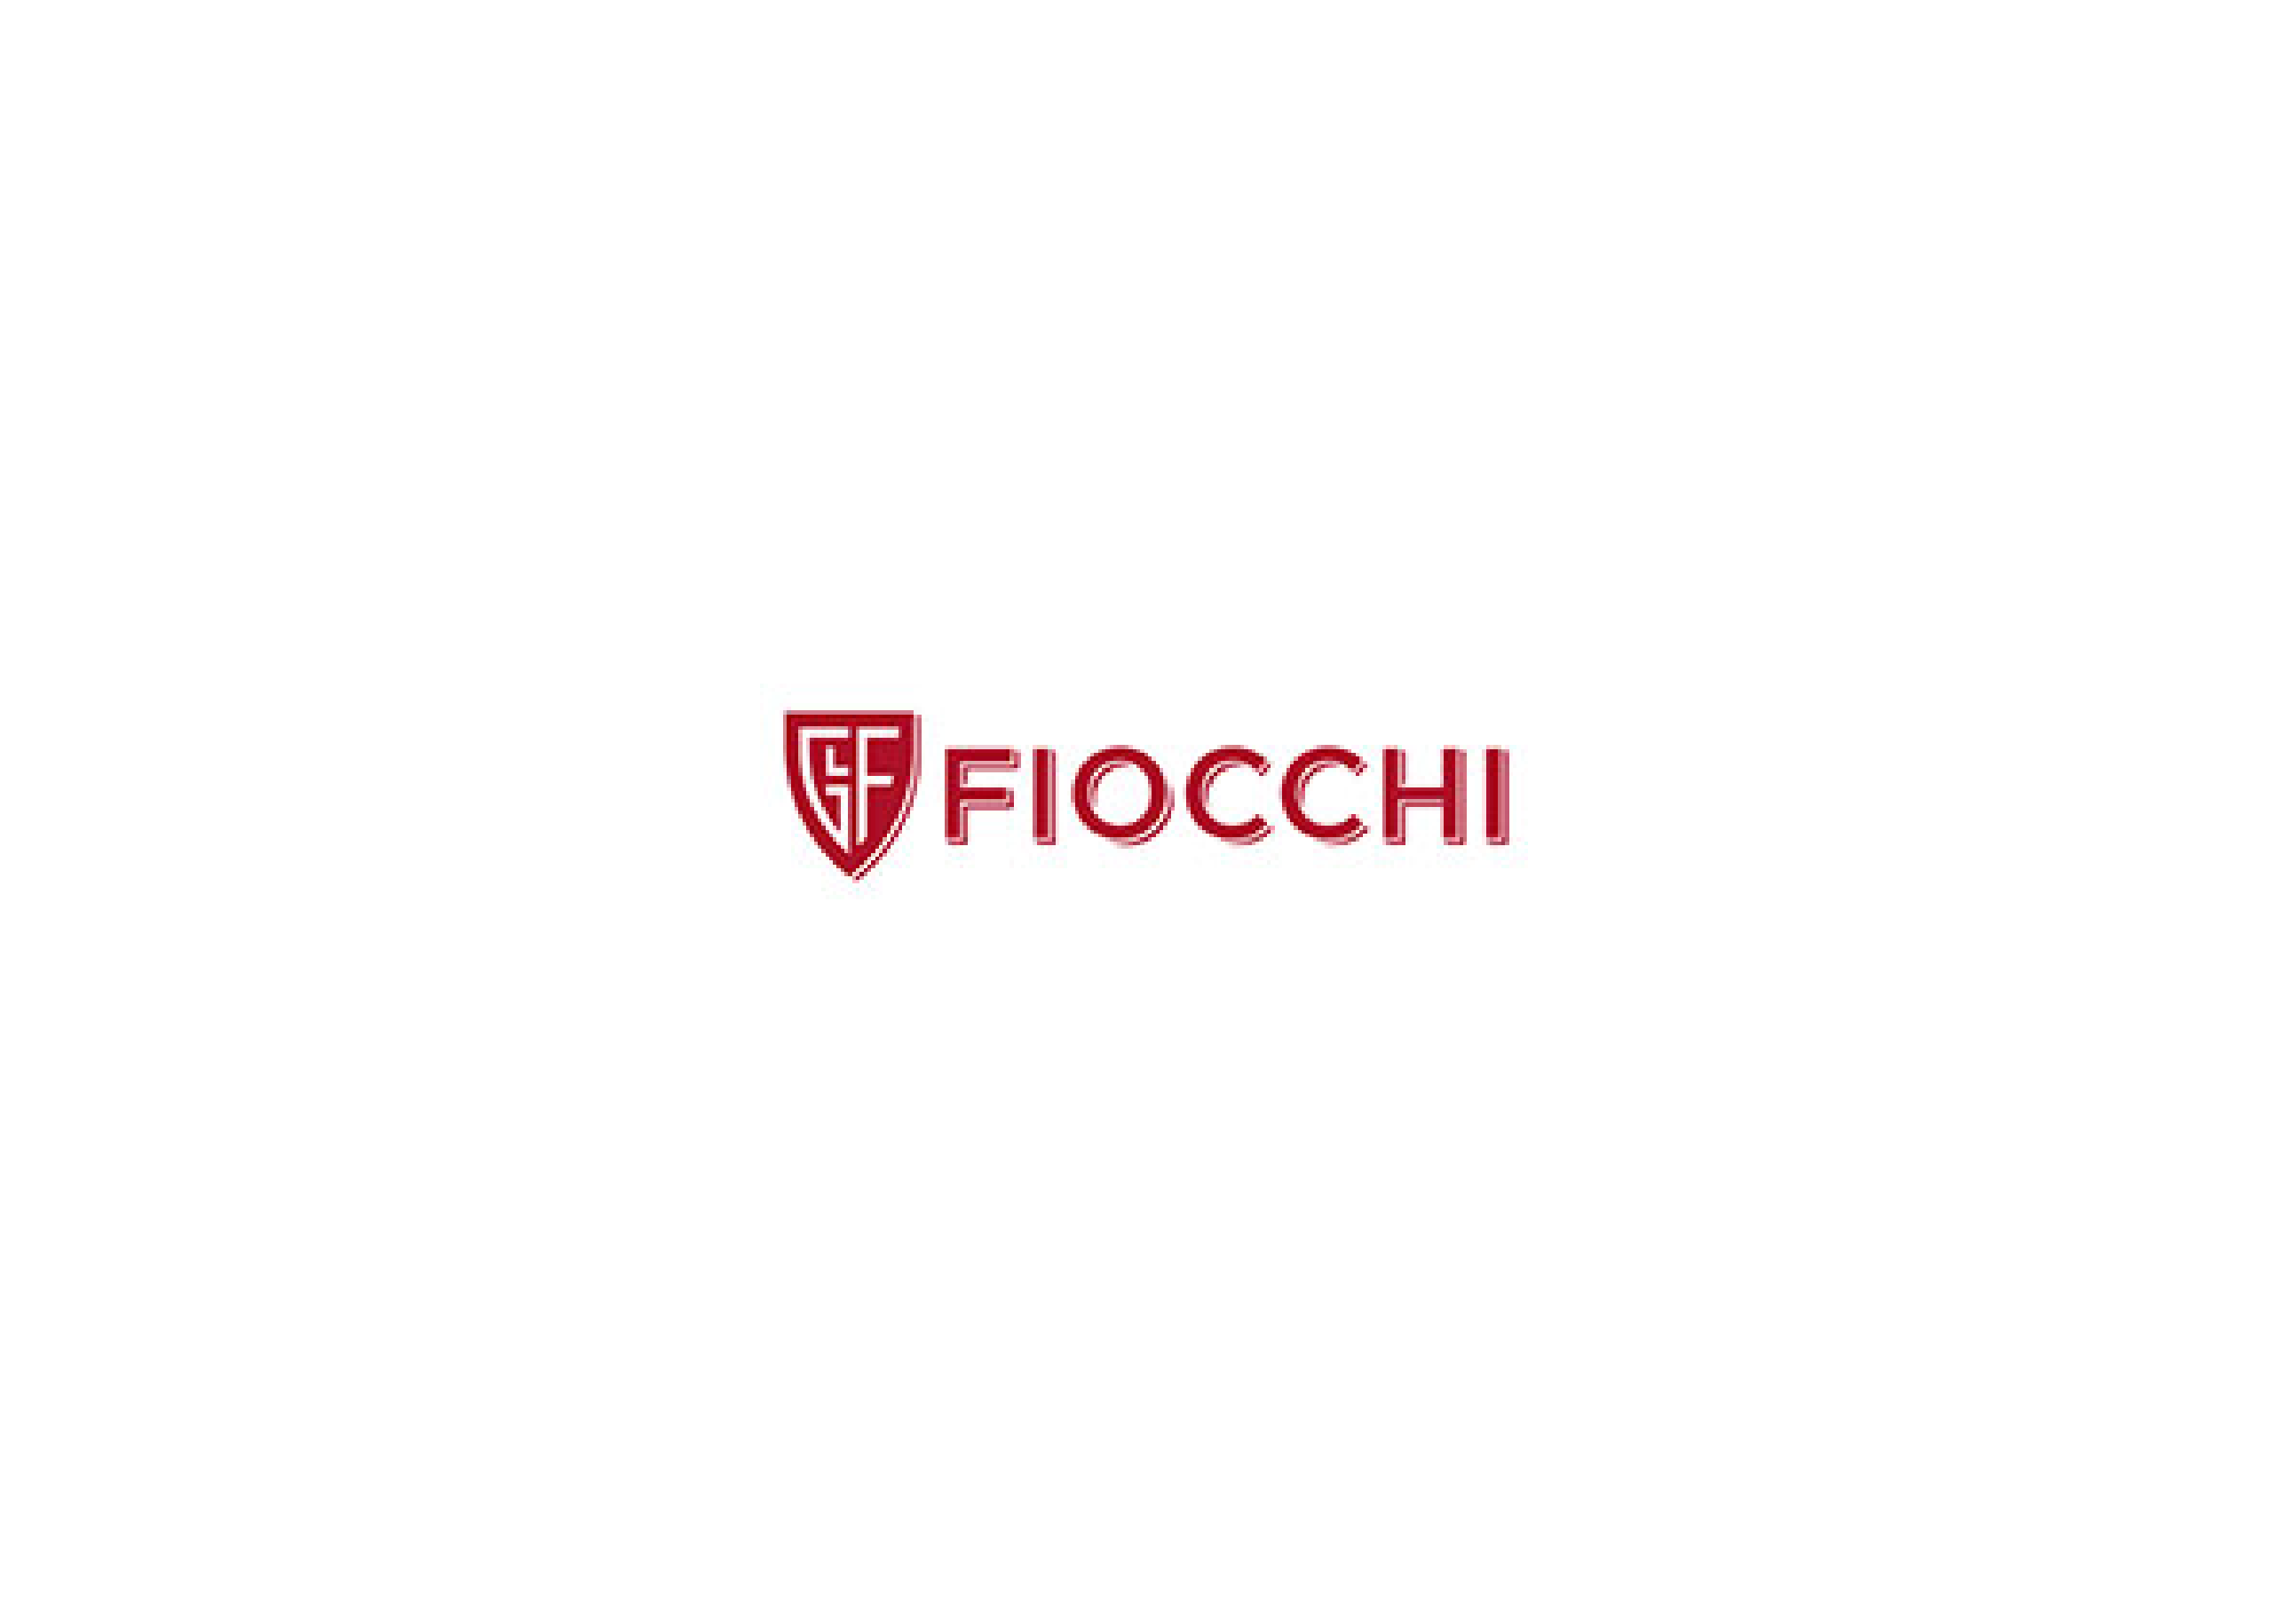 FIOCCHI TO ESTABLISH A NEW INDUSTRIAL PLATFORM TO FURTHER BOOST GROWTH IN THE UNITED STATES